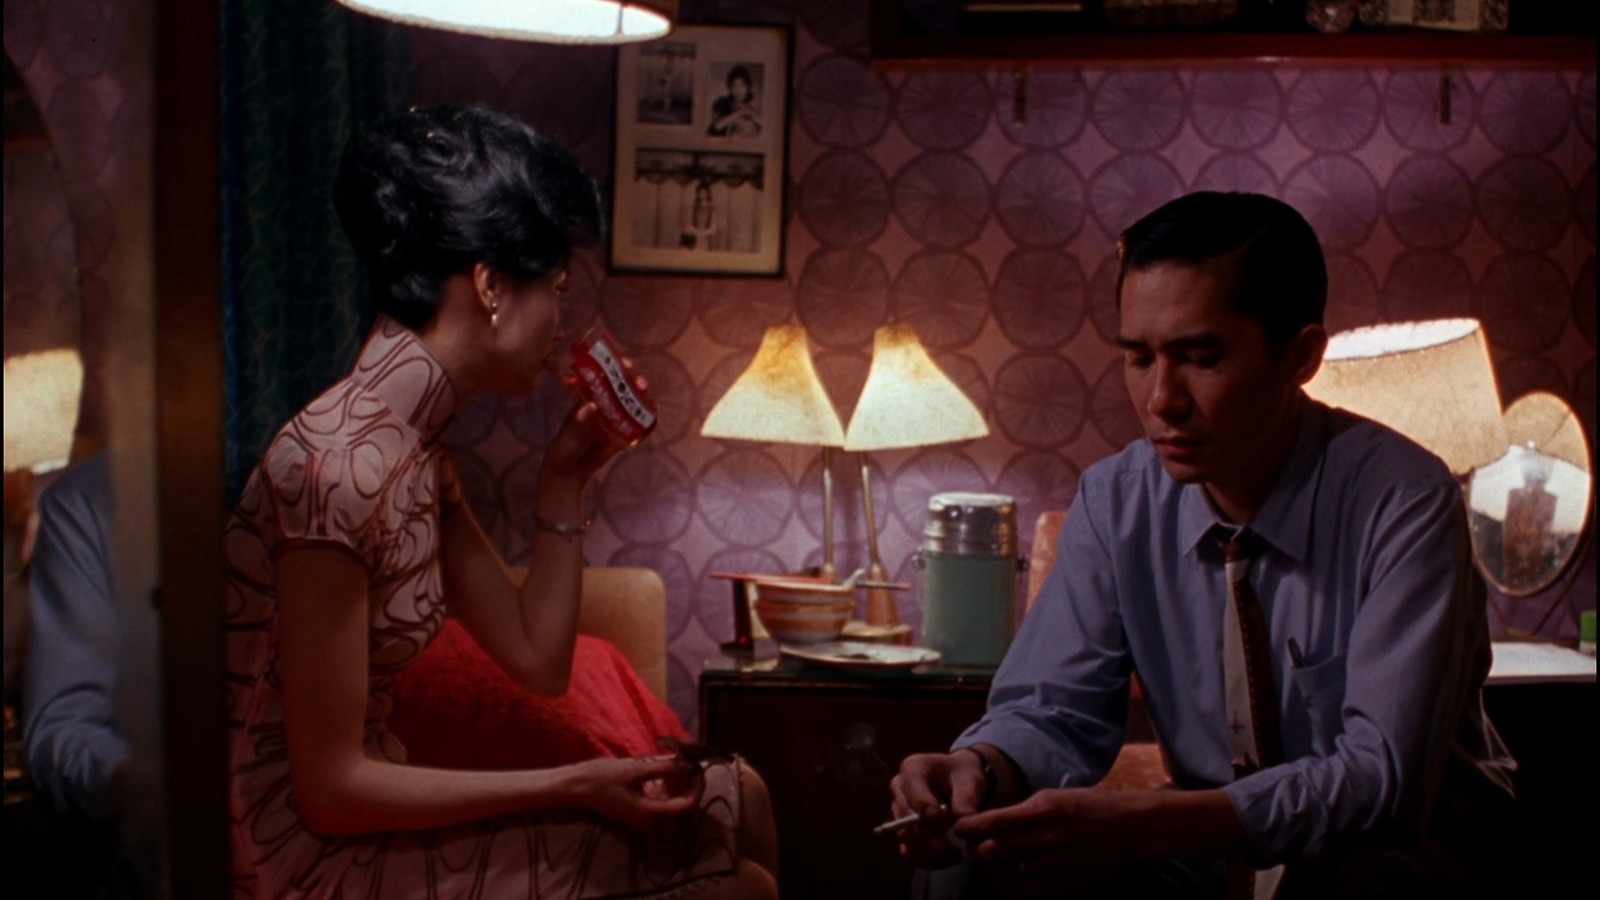 In the mood for love (2000). Imagen: Allstar/Cinetext/Jet Tone Production